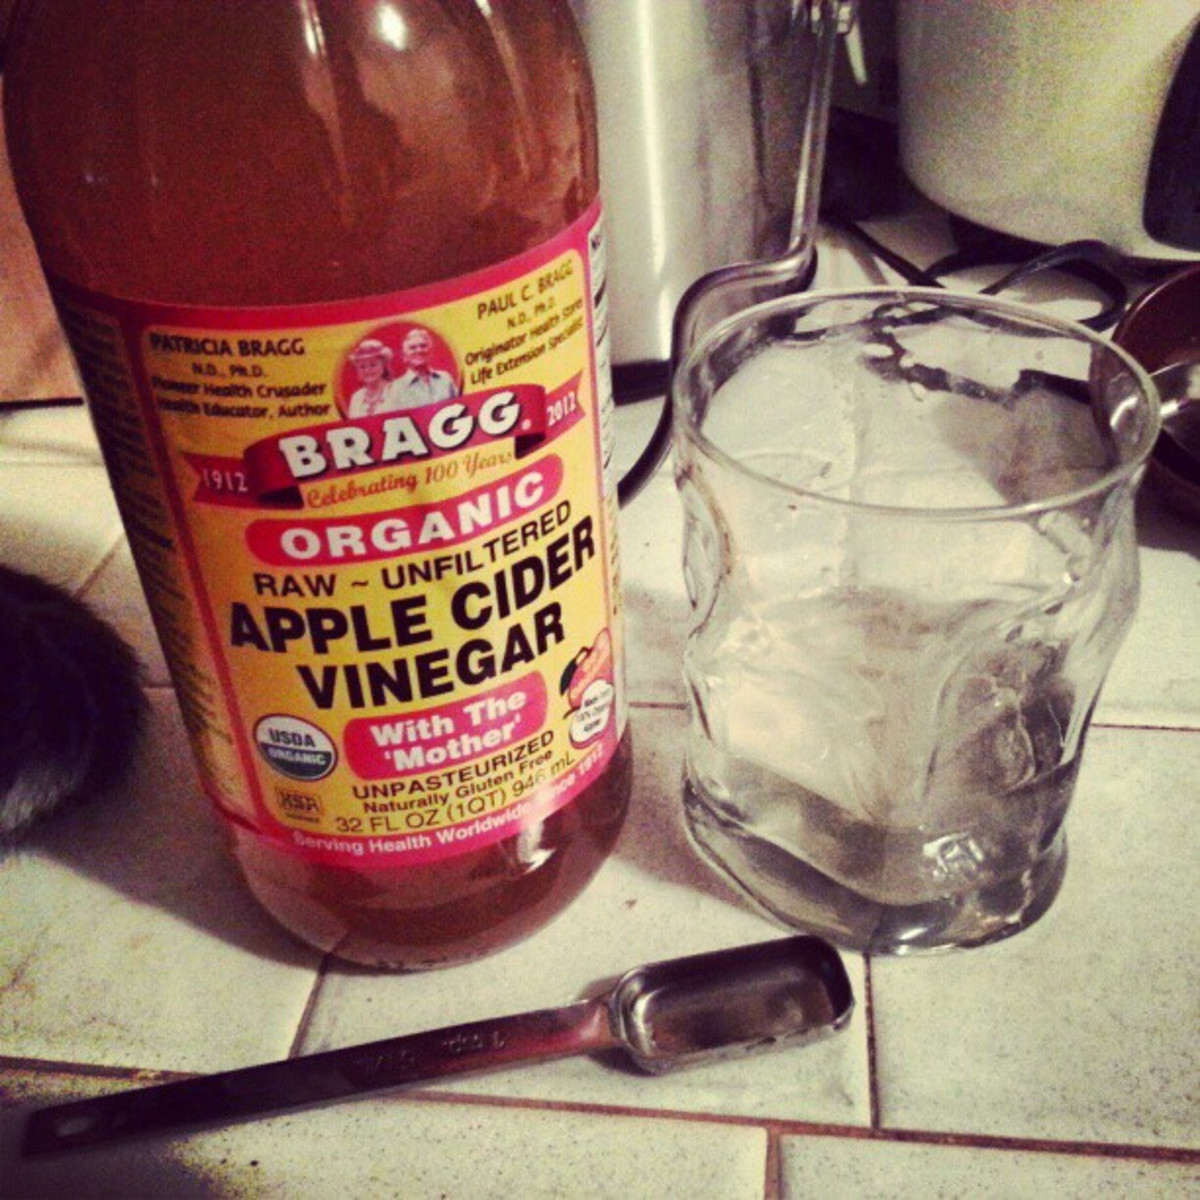 Bragg Apple Cider Vinegar for skin and many other uses. Source: Flickr - (CC BY-SA 2.0)